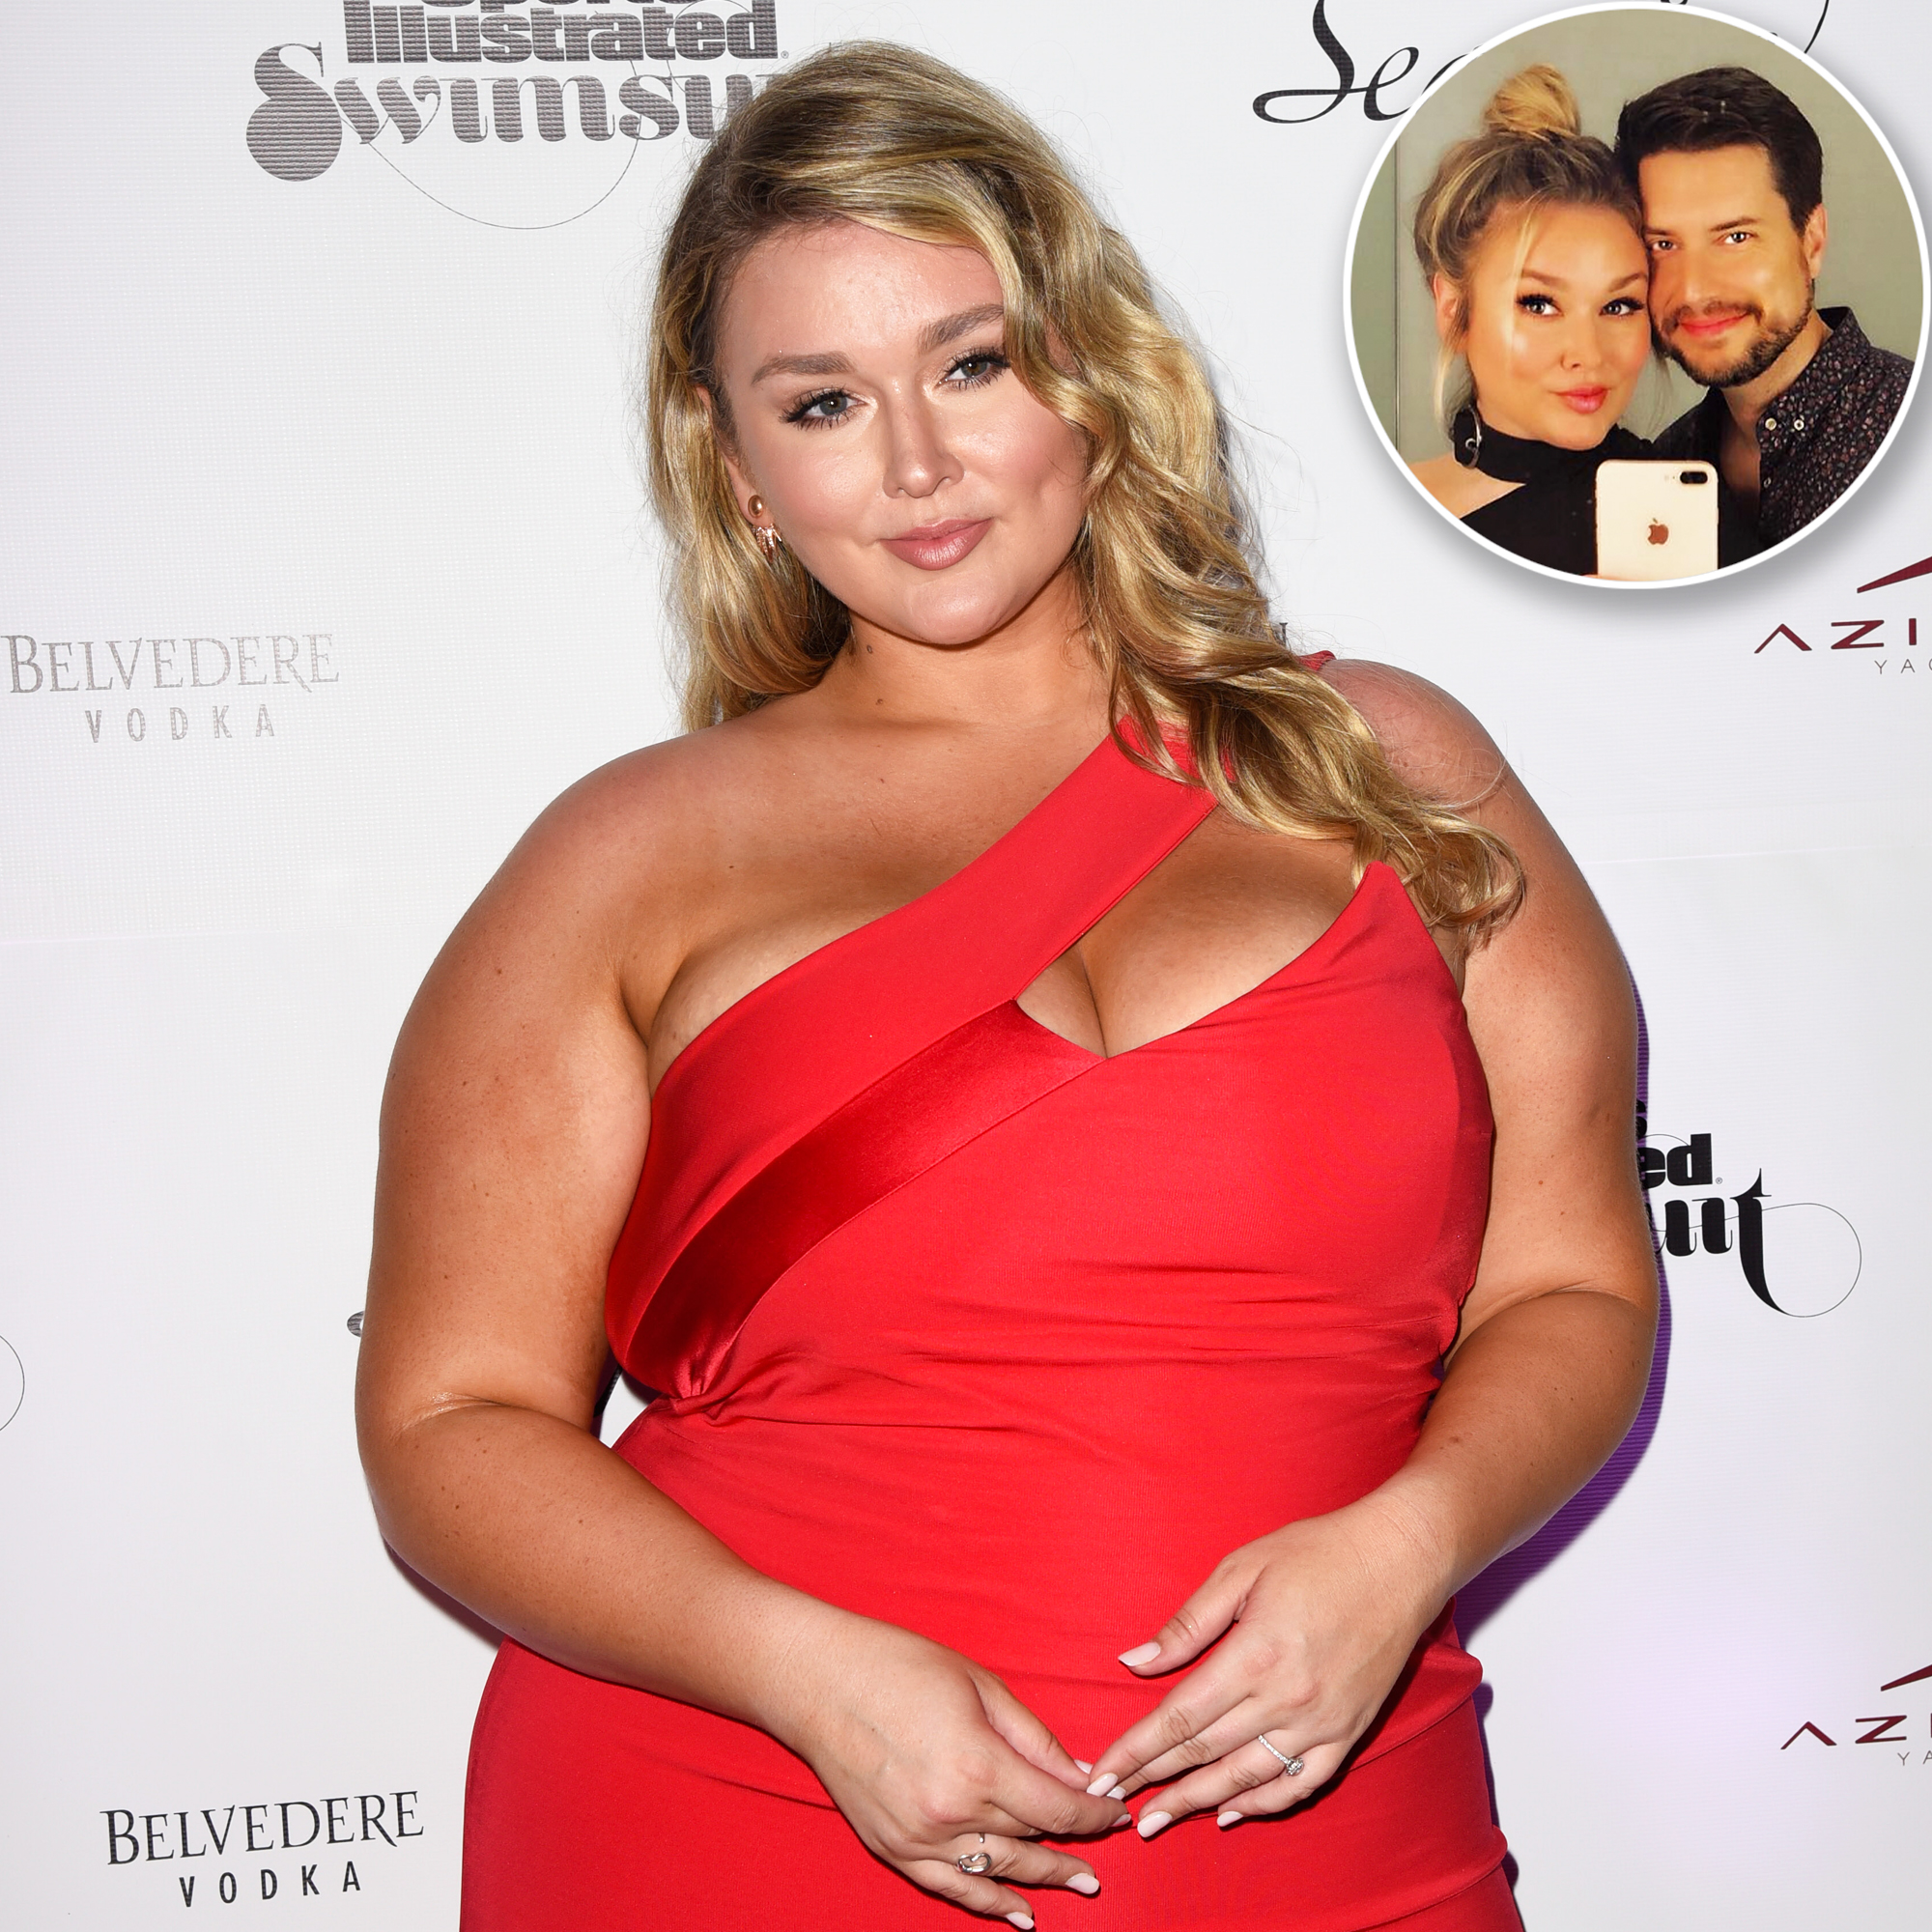 Model Hunter McGrady Gushes Over Her 'Supportive' Husband: 'He Is My Biggest Cheerleader'